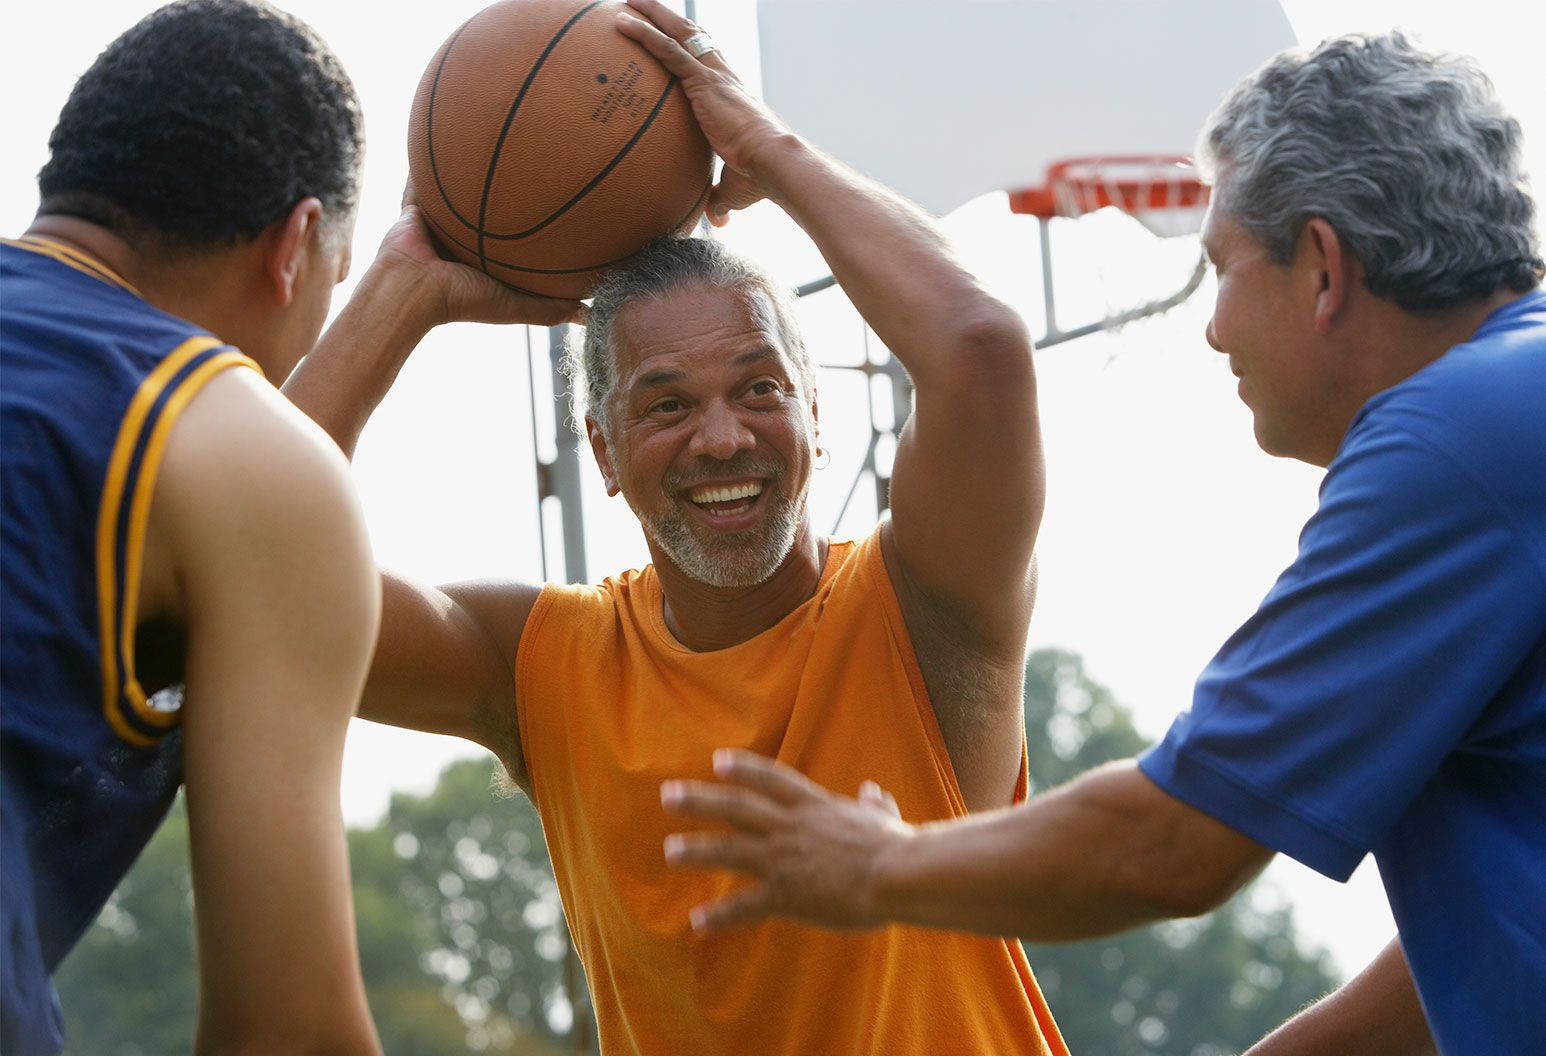 Man in orange sleeveless shirt holds a basketball over his head as two older men wearing blue tops stand in front guarding him from passing.